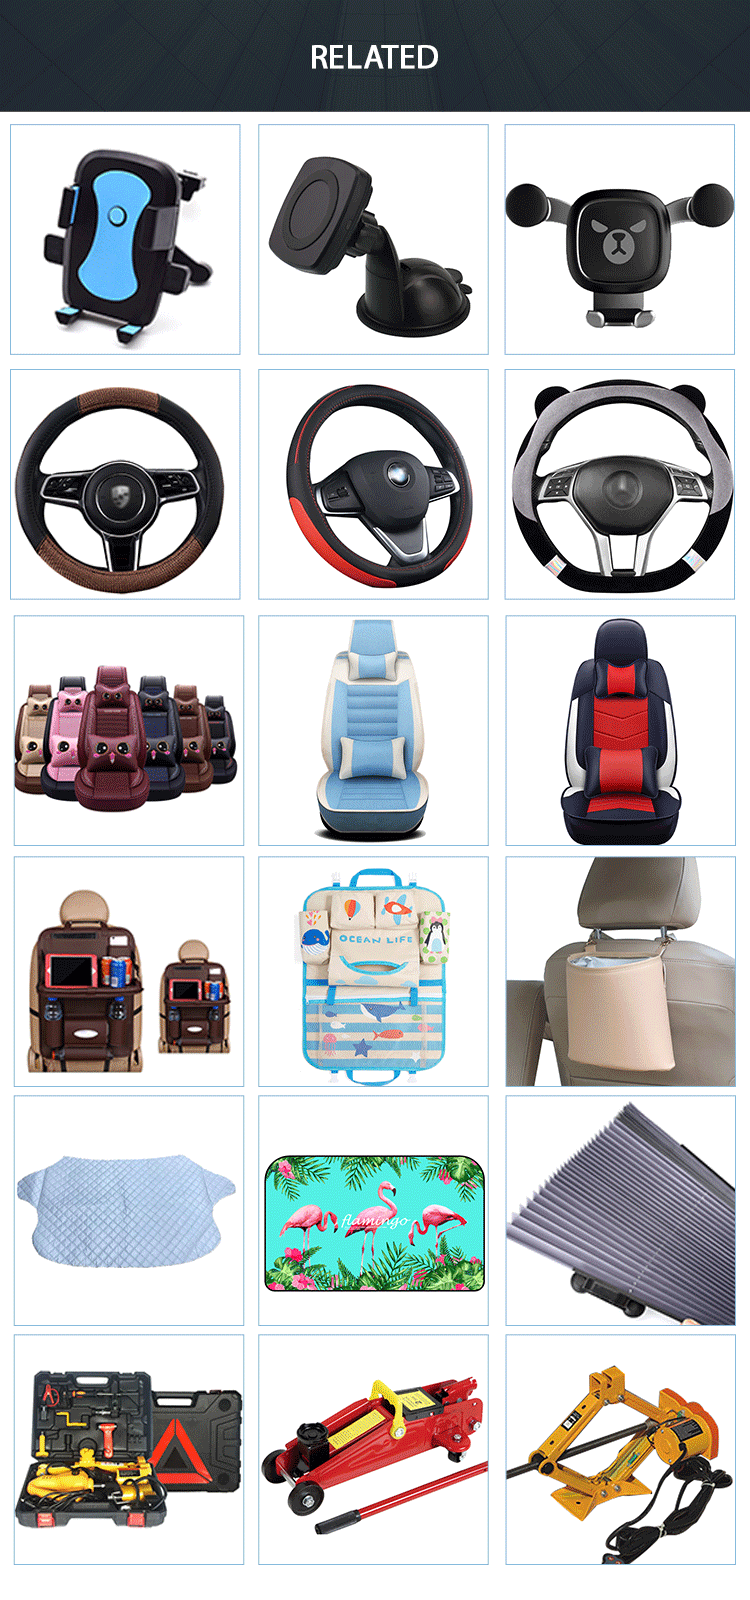 ZT-S-040 Car inflatable child safety seat portable baby safety pad collapsible universal car inflatable seat cushion